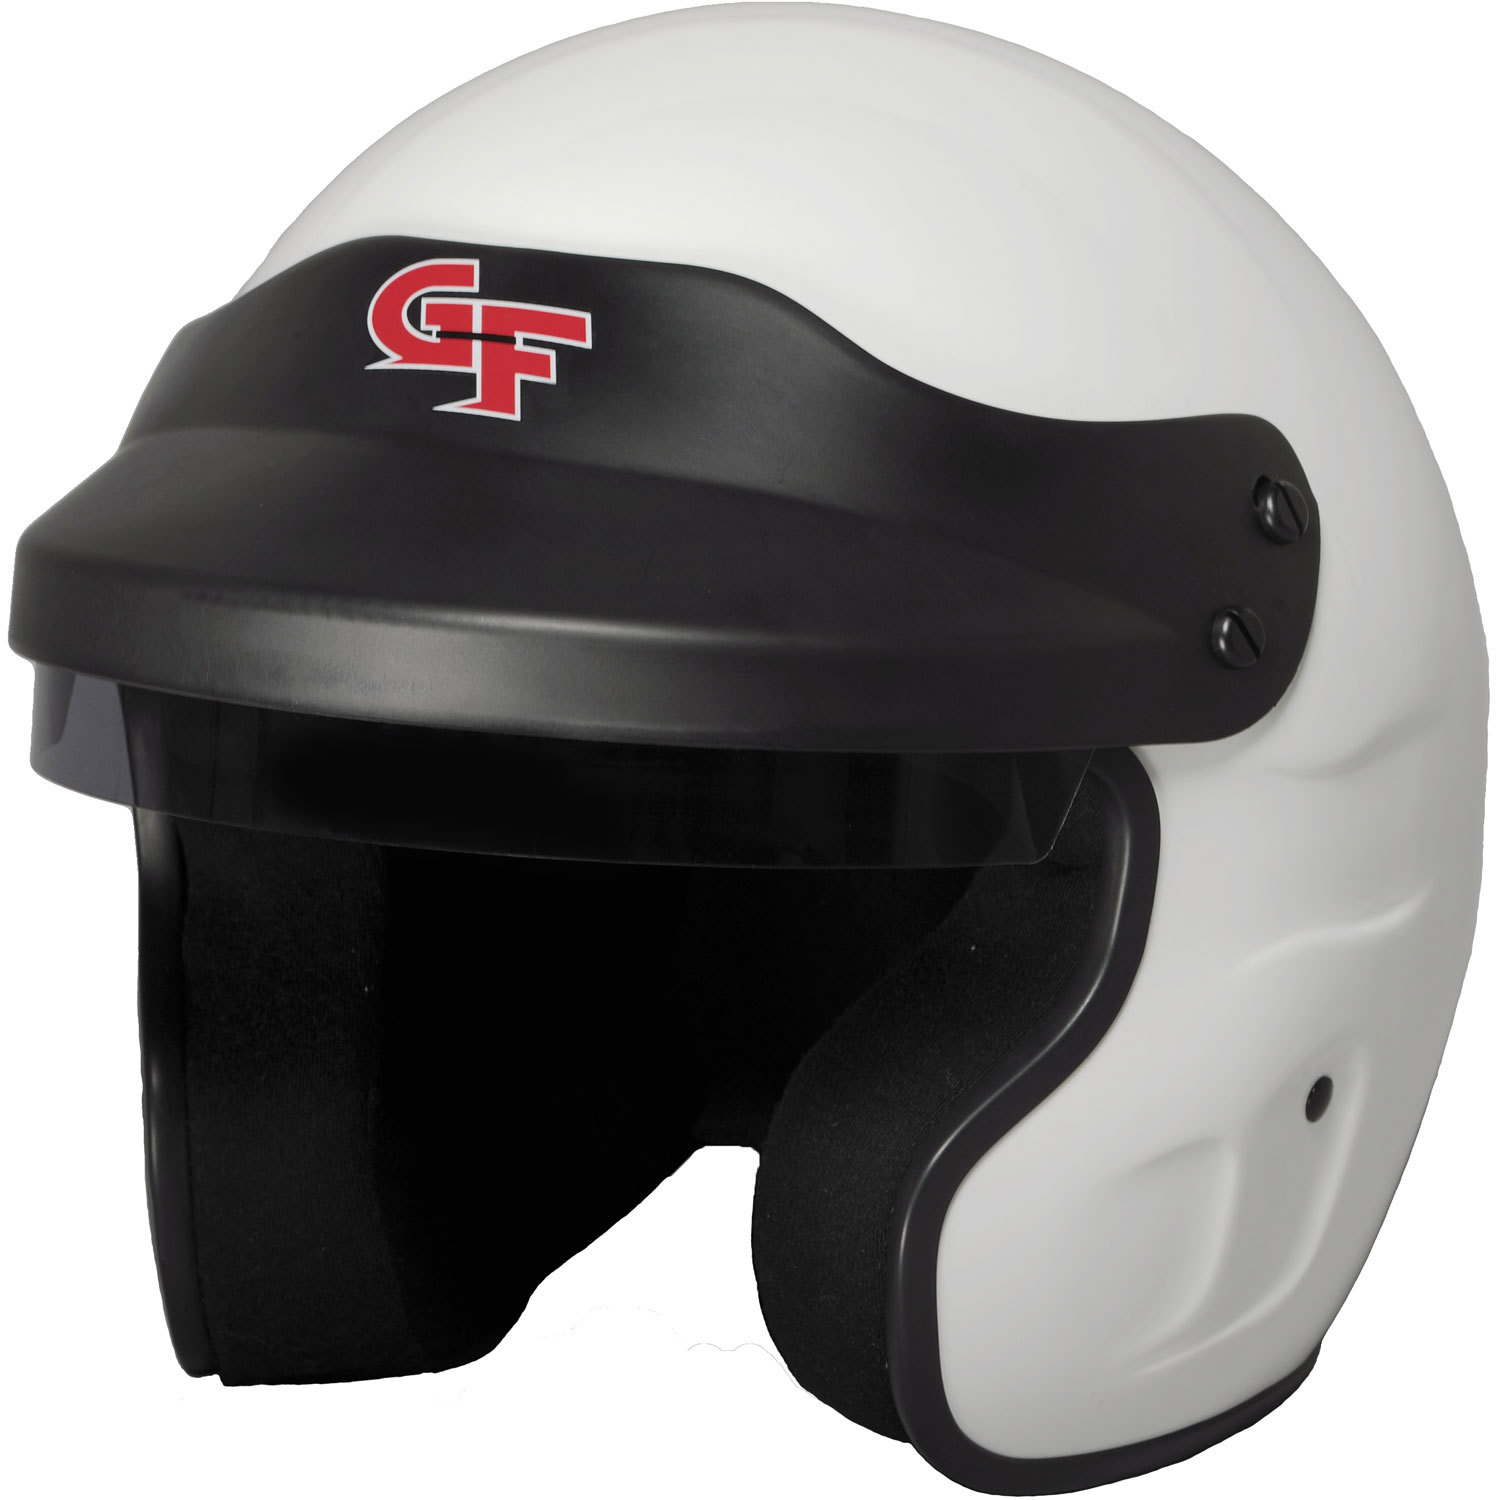 G-Force 13002XLGWH Helmet, GF1, Open Face, Snell SA2020, Head and Neck Support Ready, White, X-Large, Each